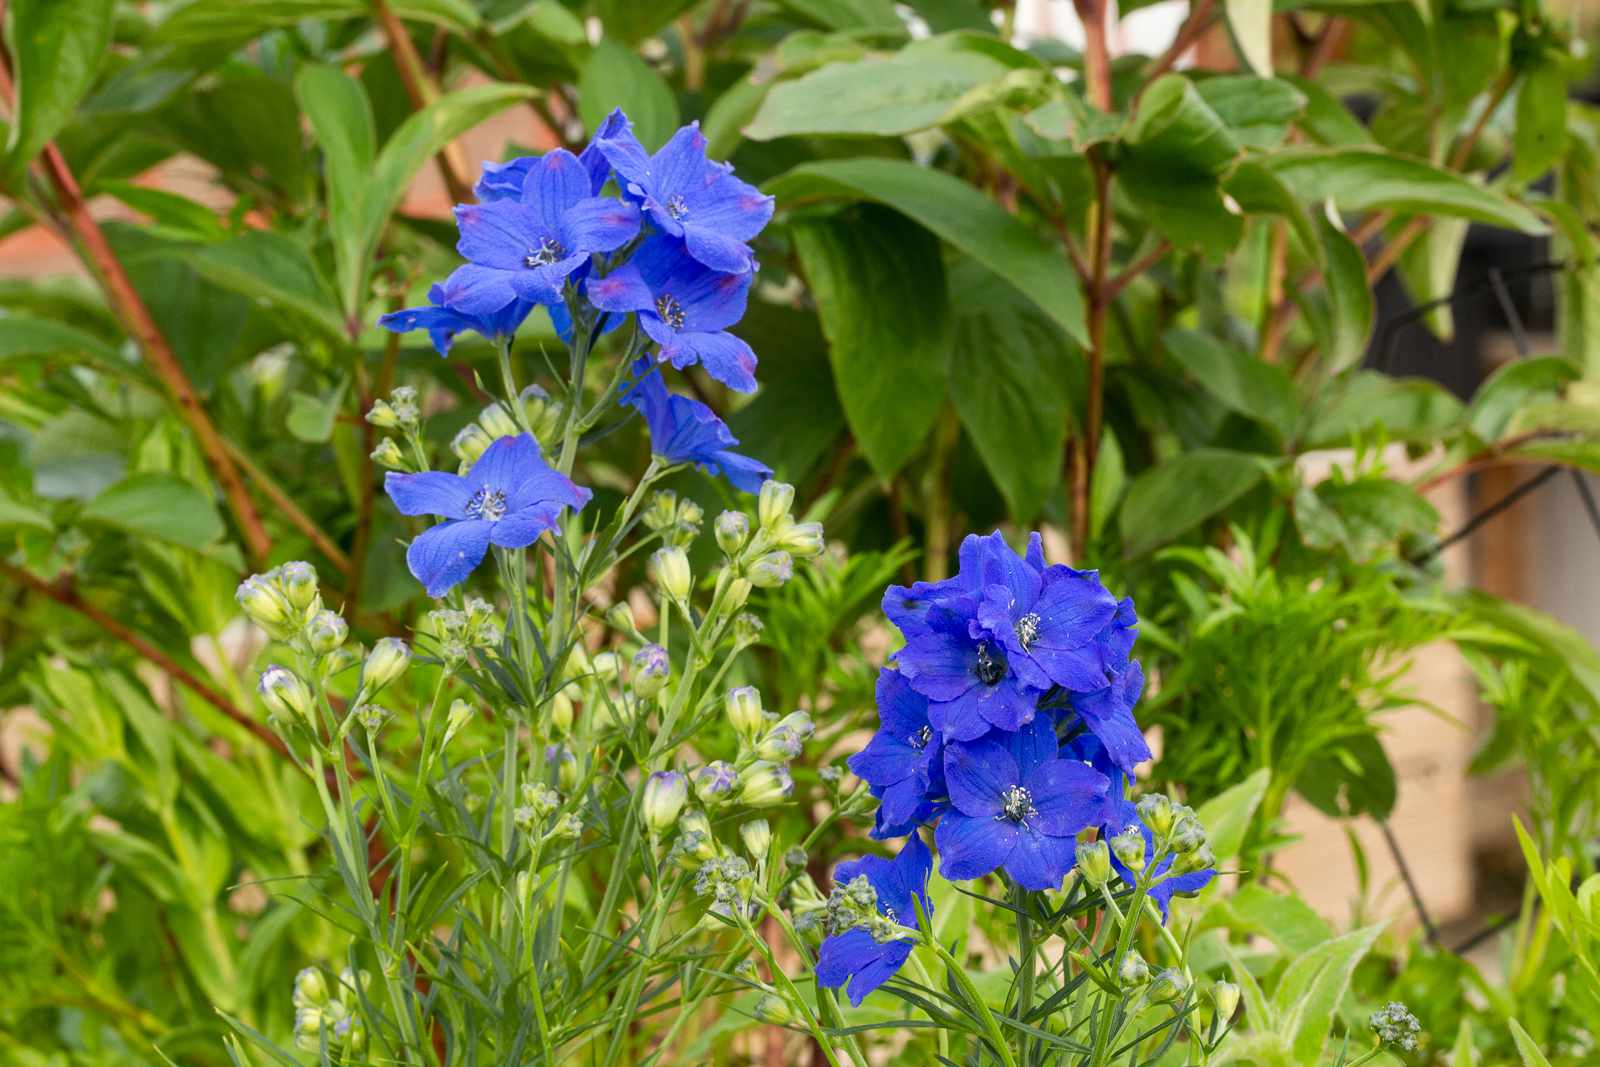 'Black Knight' delphinium plant with blue-purple flowers on tall stems surrounded by buds